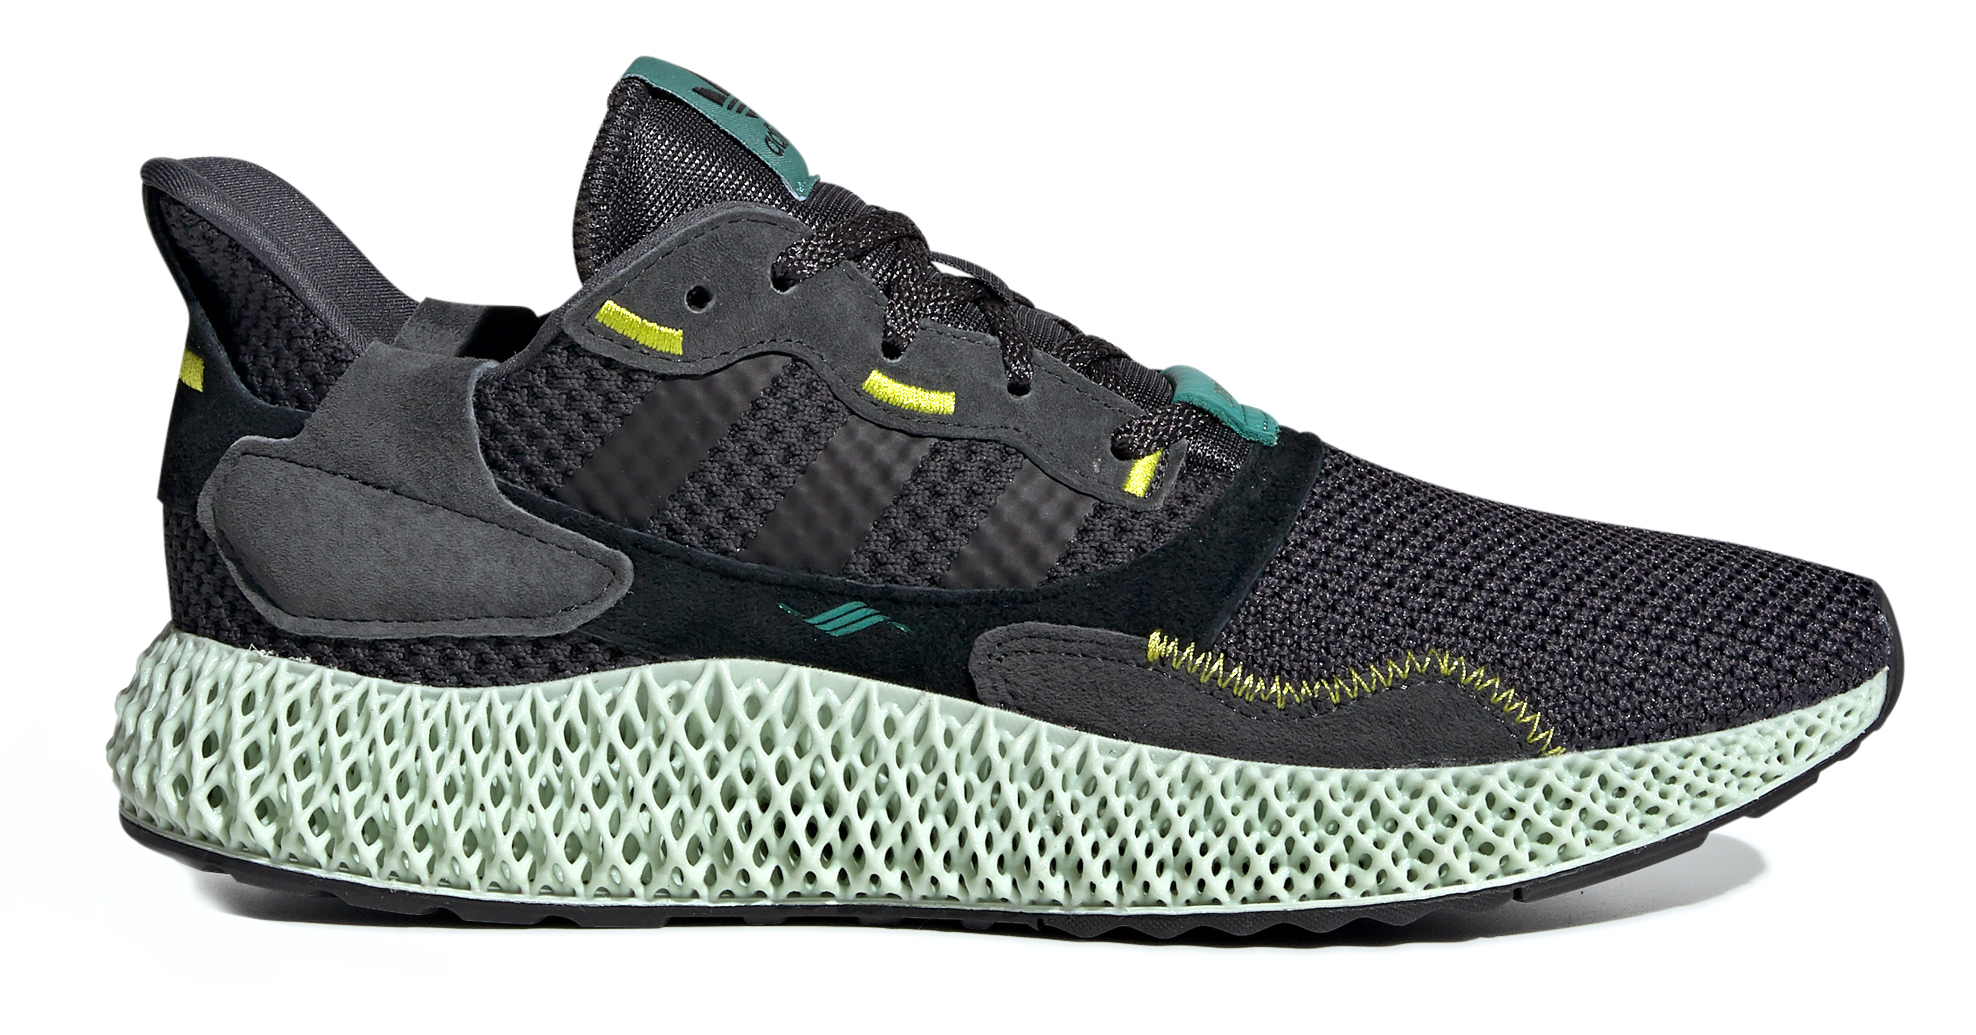 adidas zx 4000 4d sizing